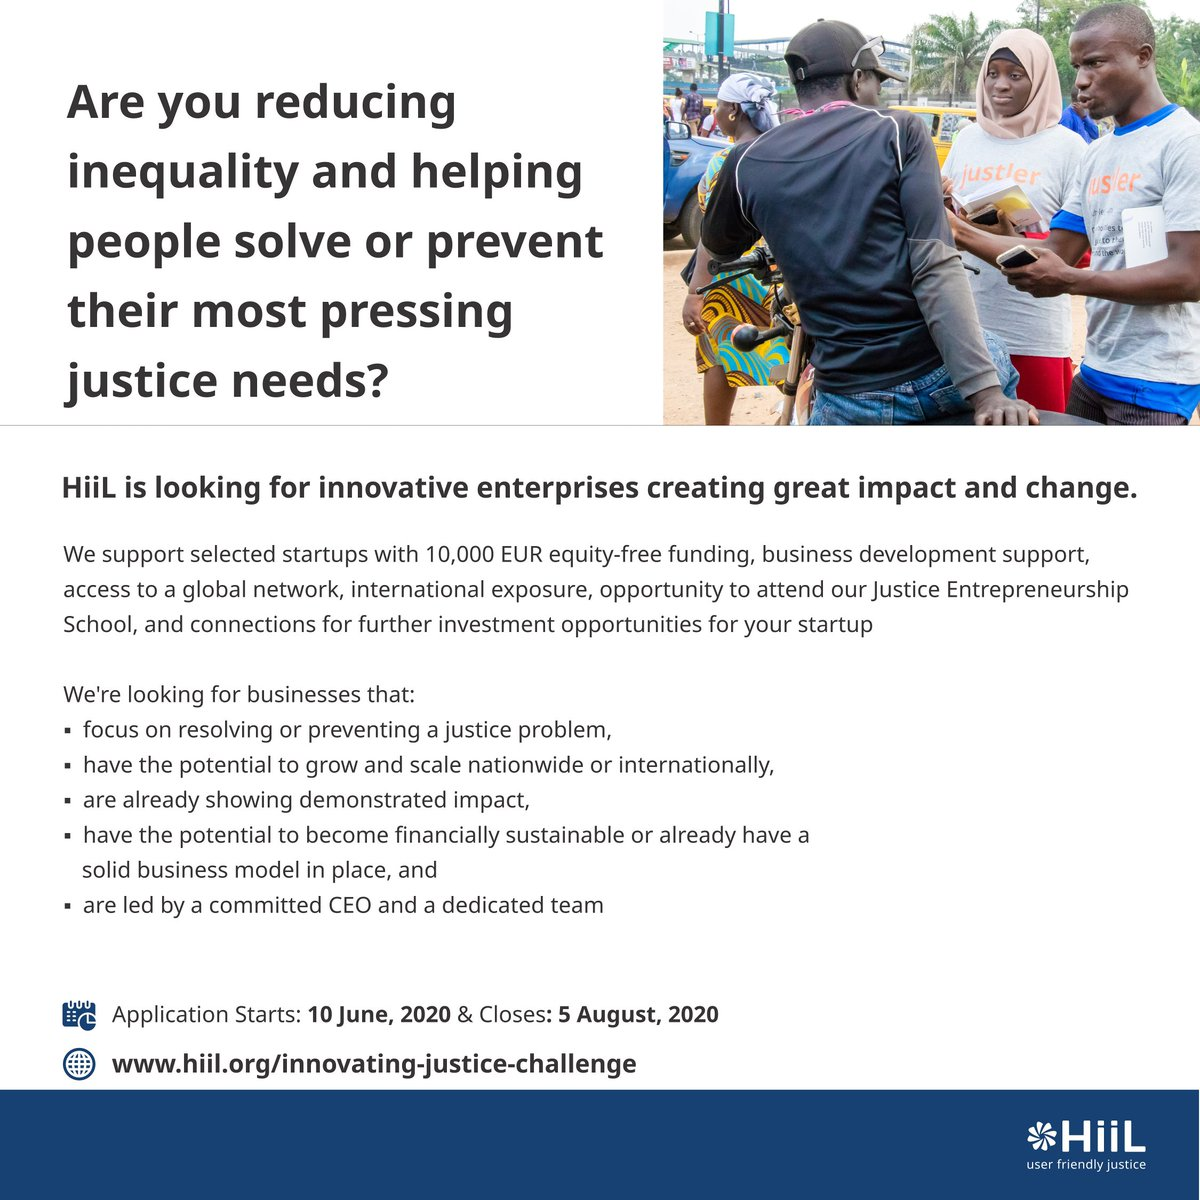 It's that time of the year again!   Applications for HiiL's Innovating Justice Challenge 2020 are now open!   Is your organization developing sustainable, scalable solutions to pressing justice needs? Are you creating access to justice, reducing inequality and unfairness? https://t.co/PCVOQC6OAa